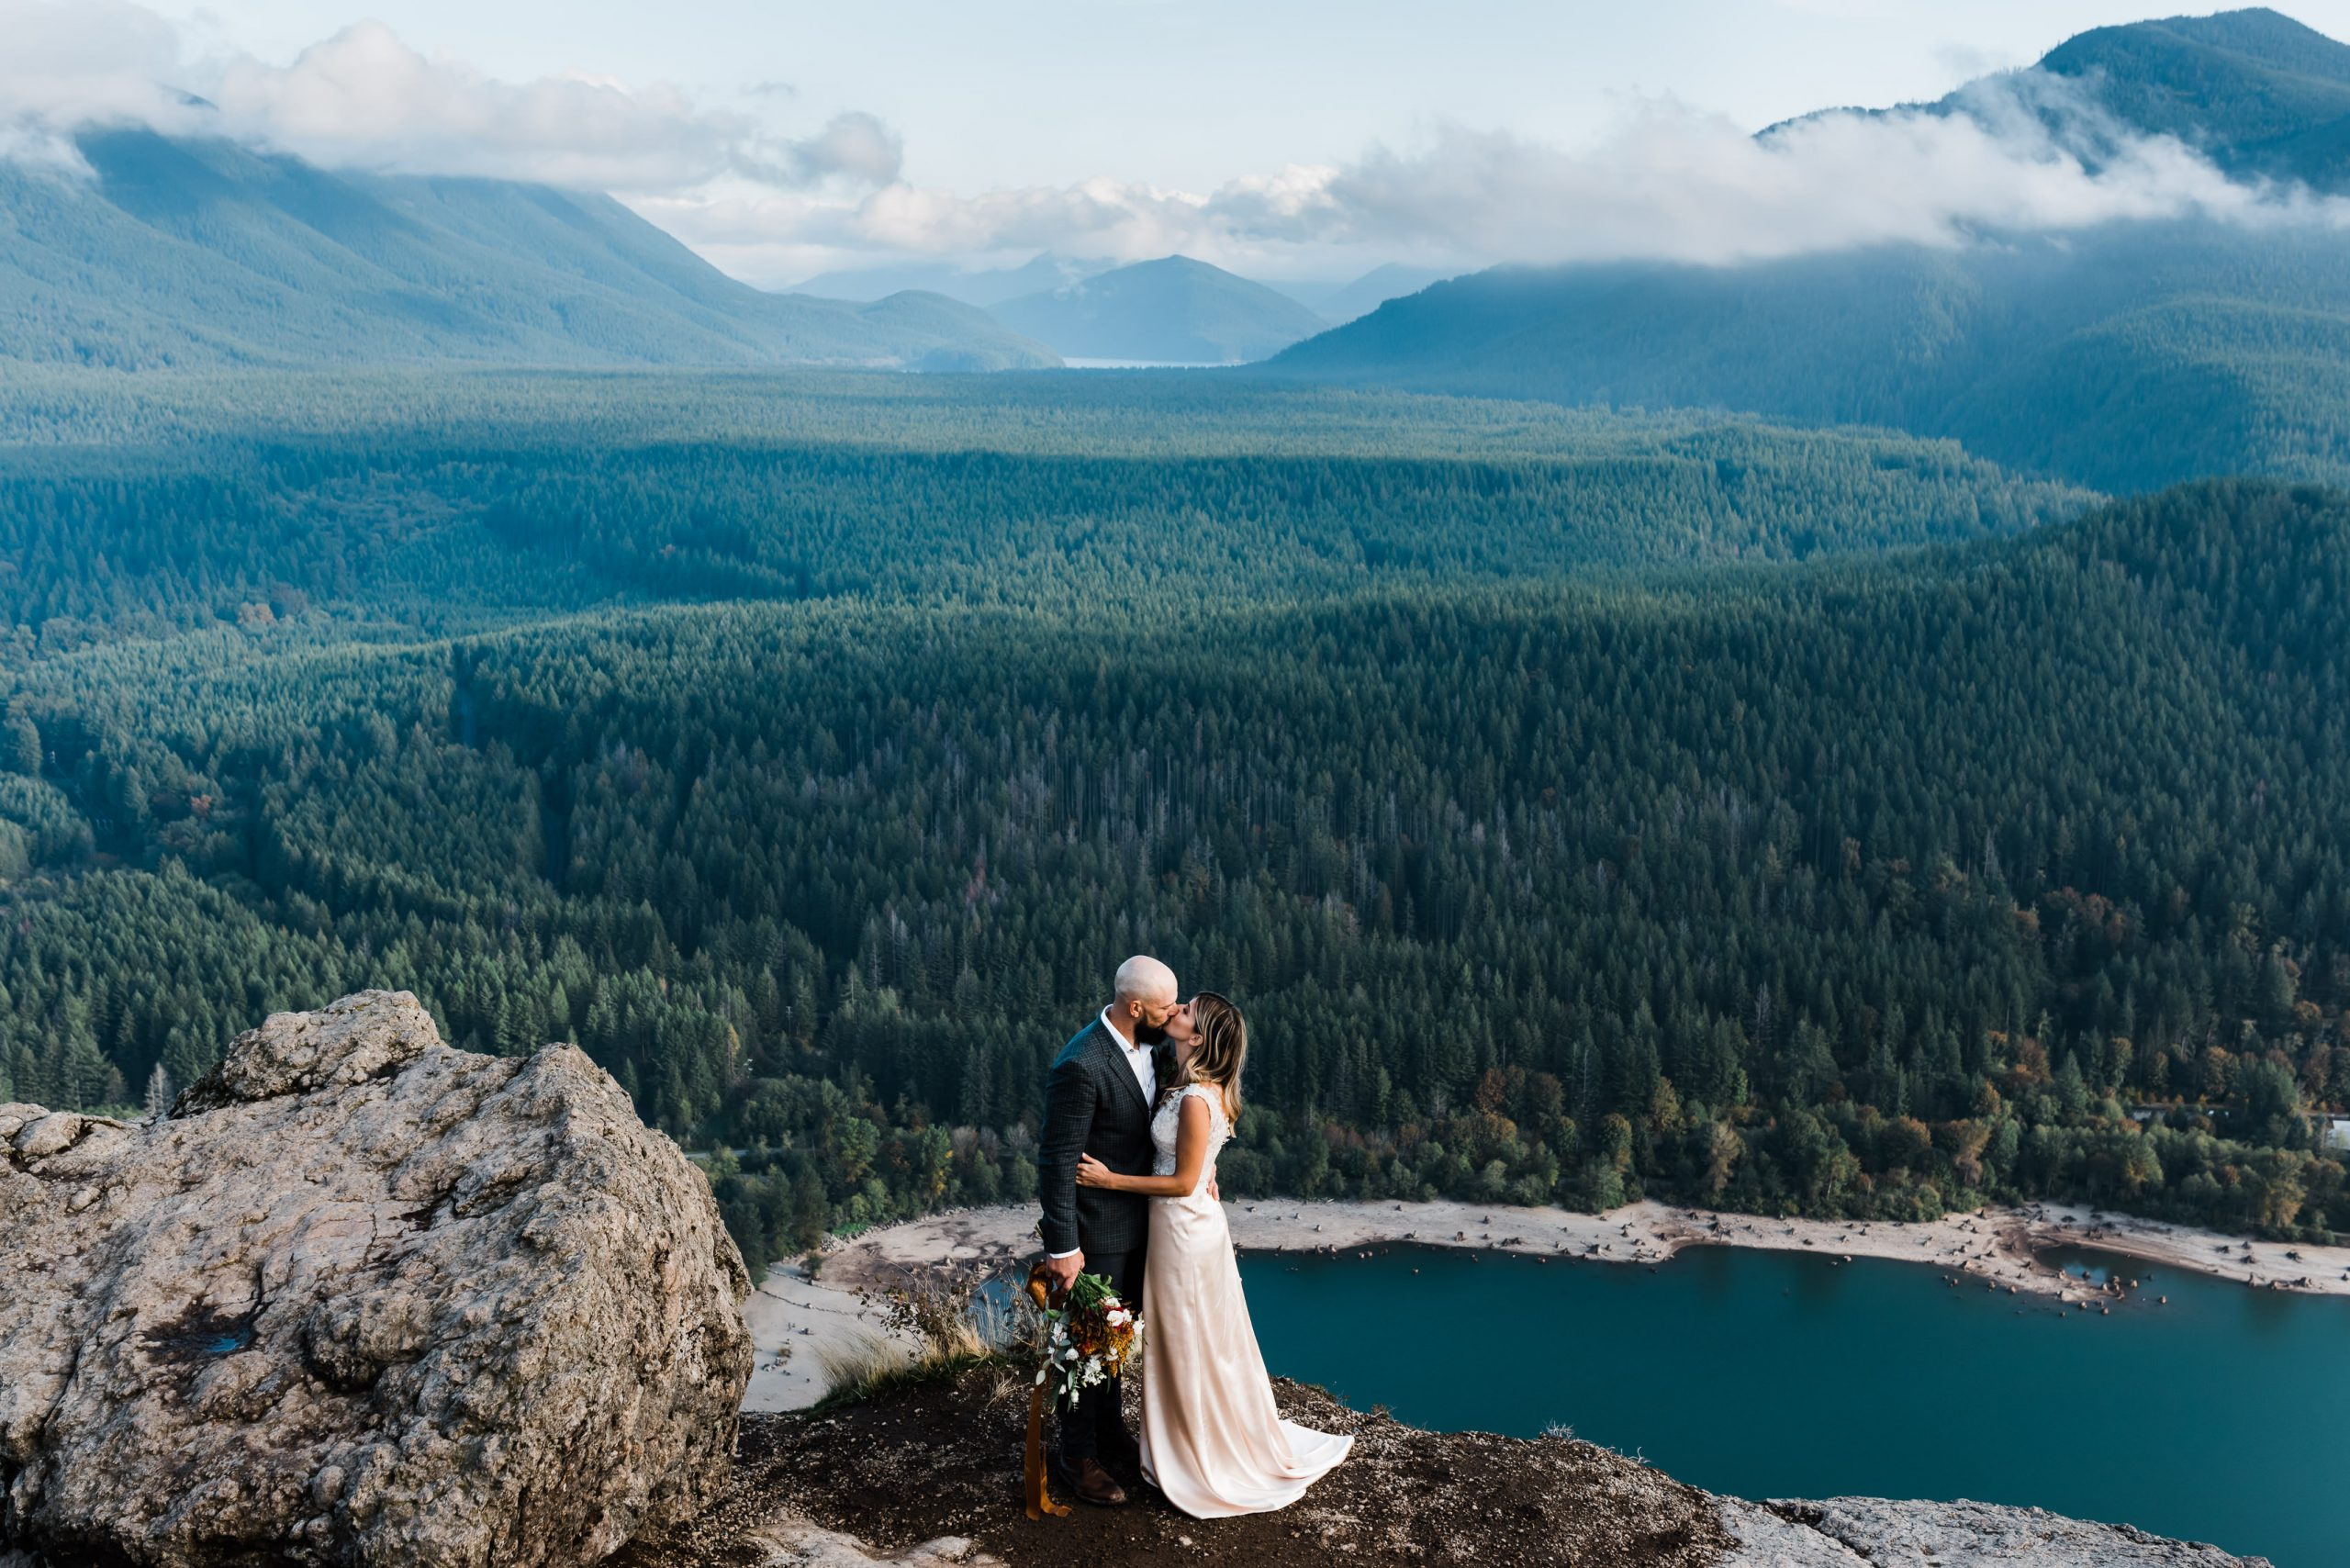 Couple eloping on top of Rattlesnake Ledge in North Bend, Washington State.